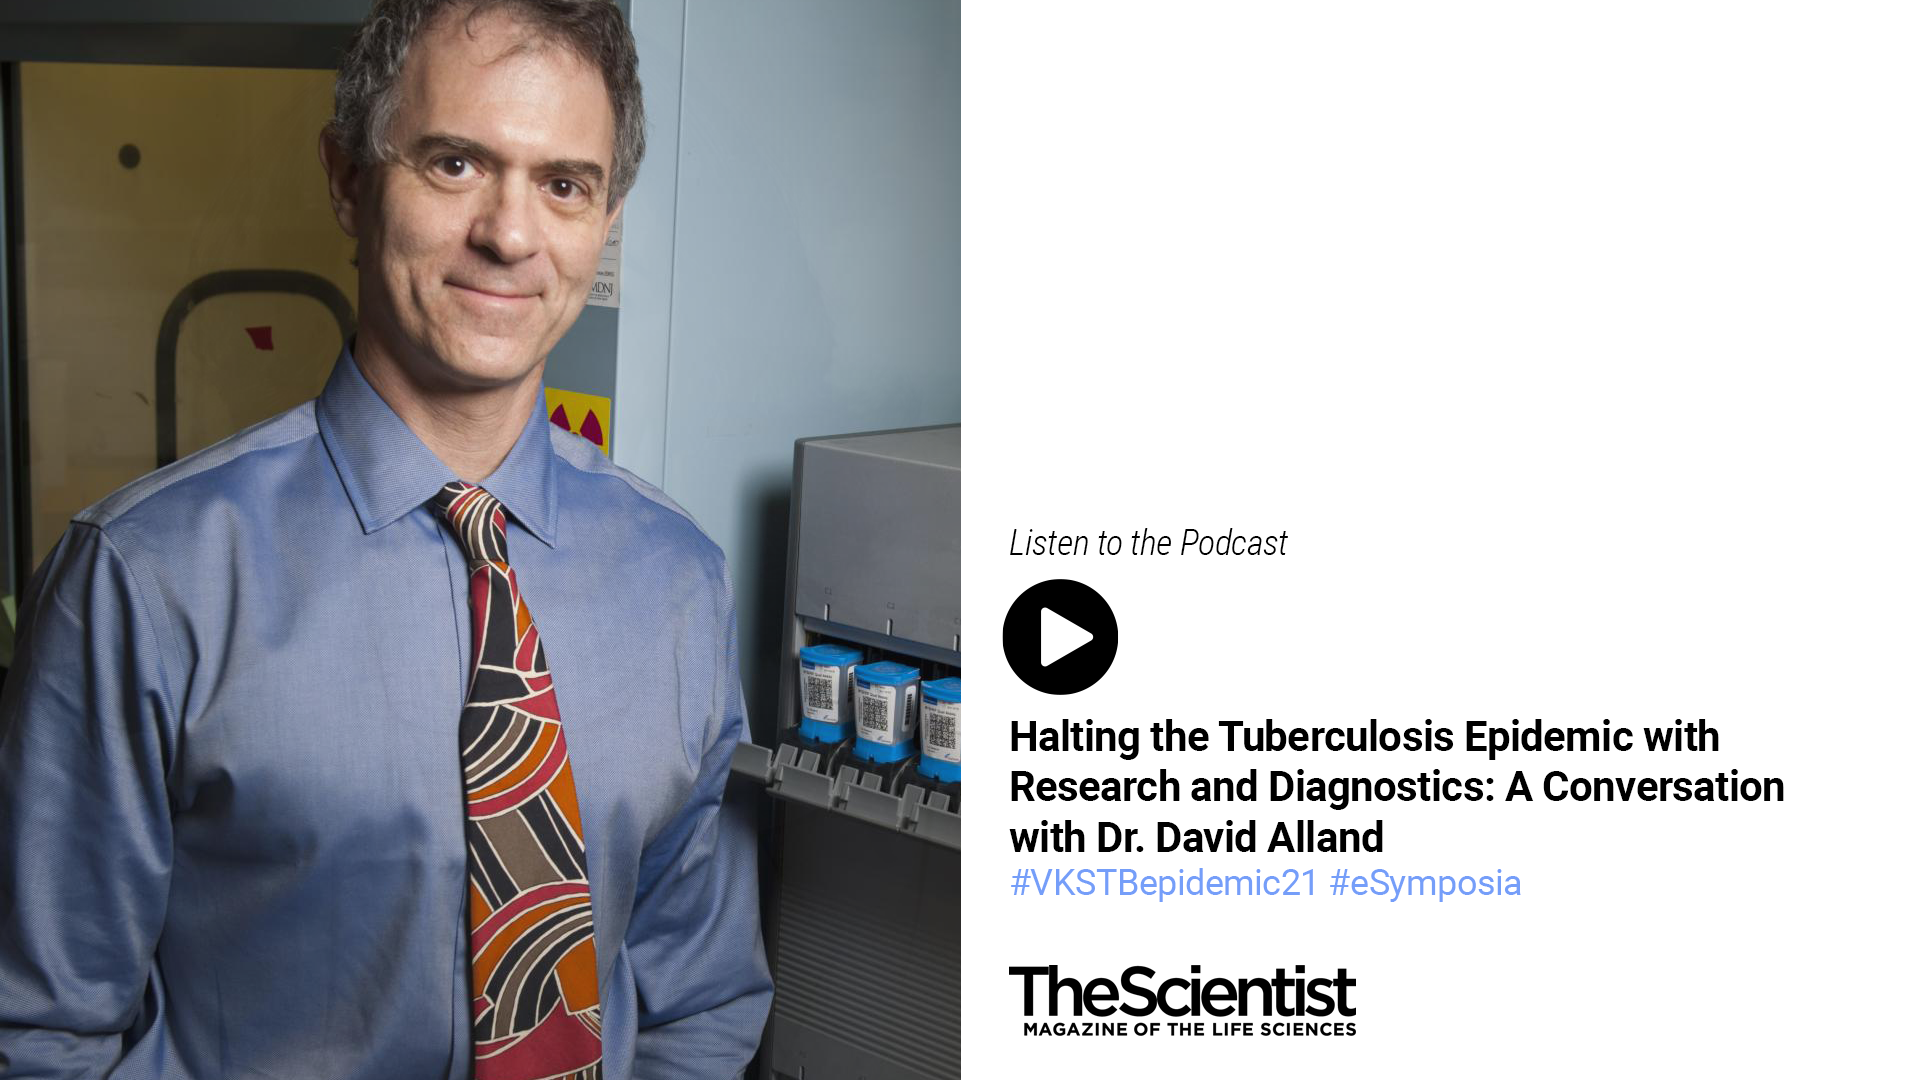 Halting the Tuberculosis Epidemic with Research and Diagnostics: A Conversation with Dr. David Alland